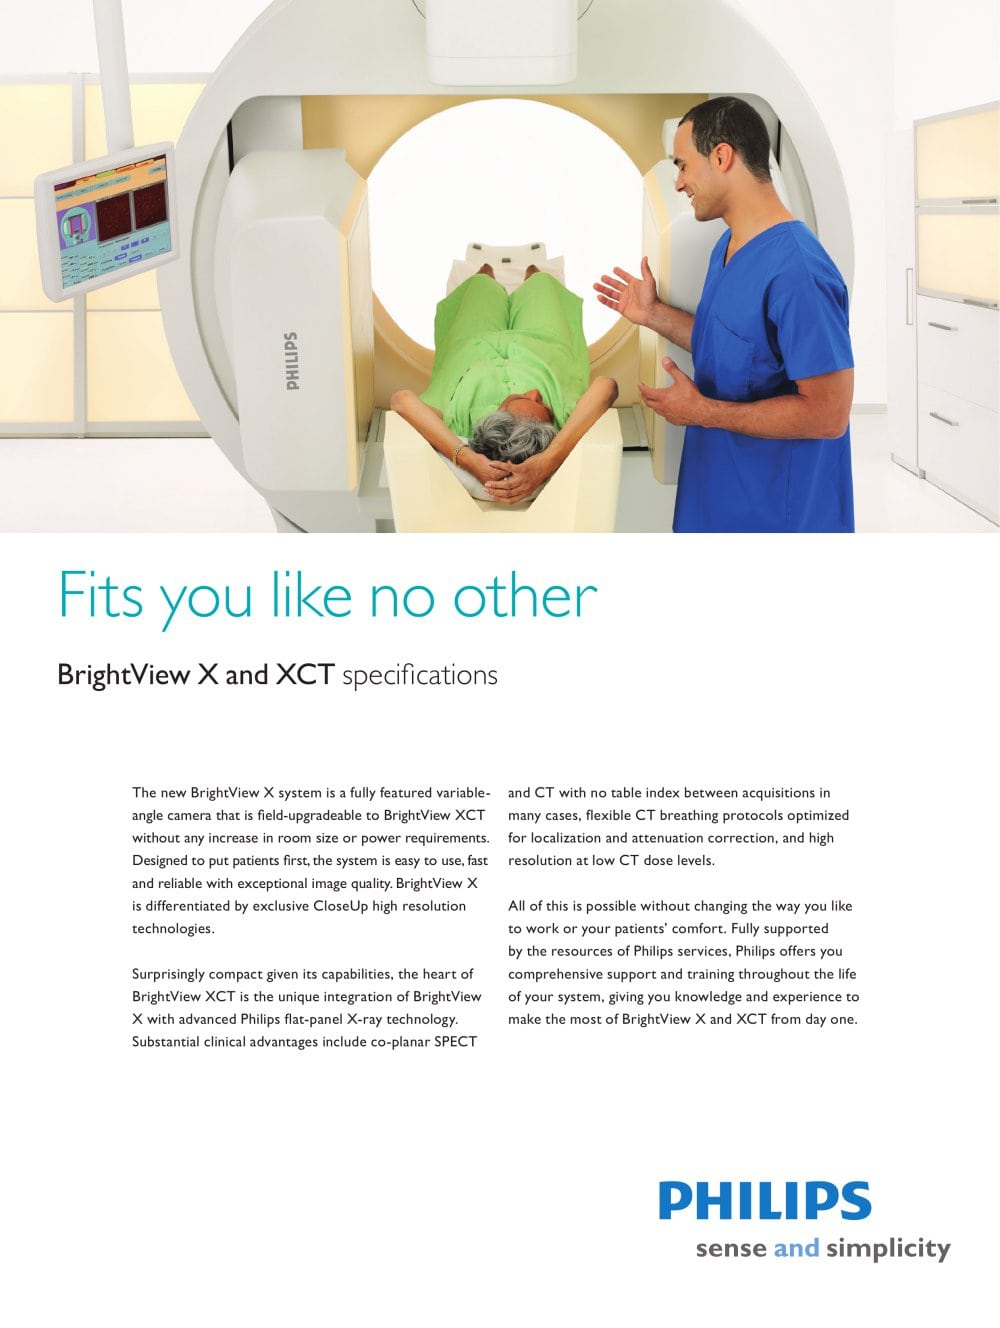 Brightview x and xct 1 6 pages